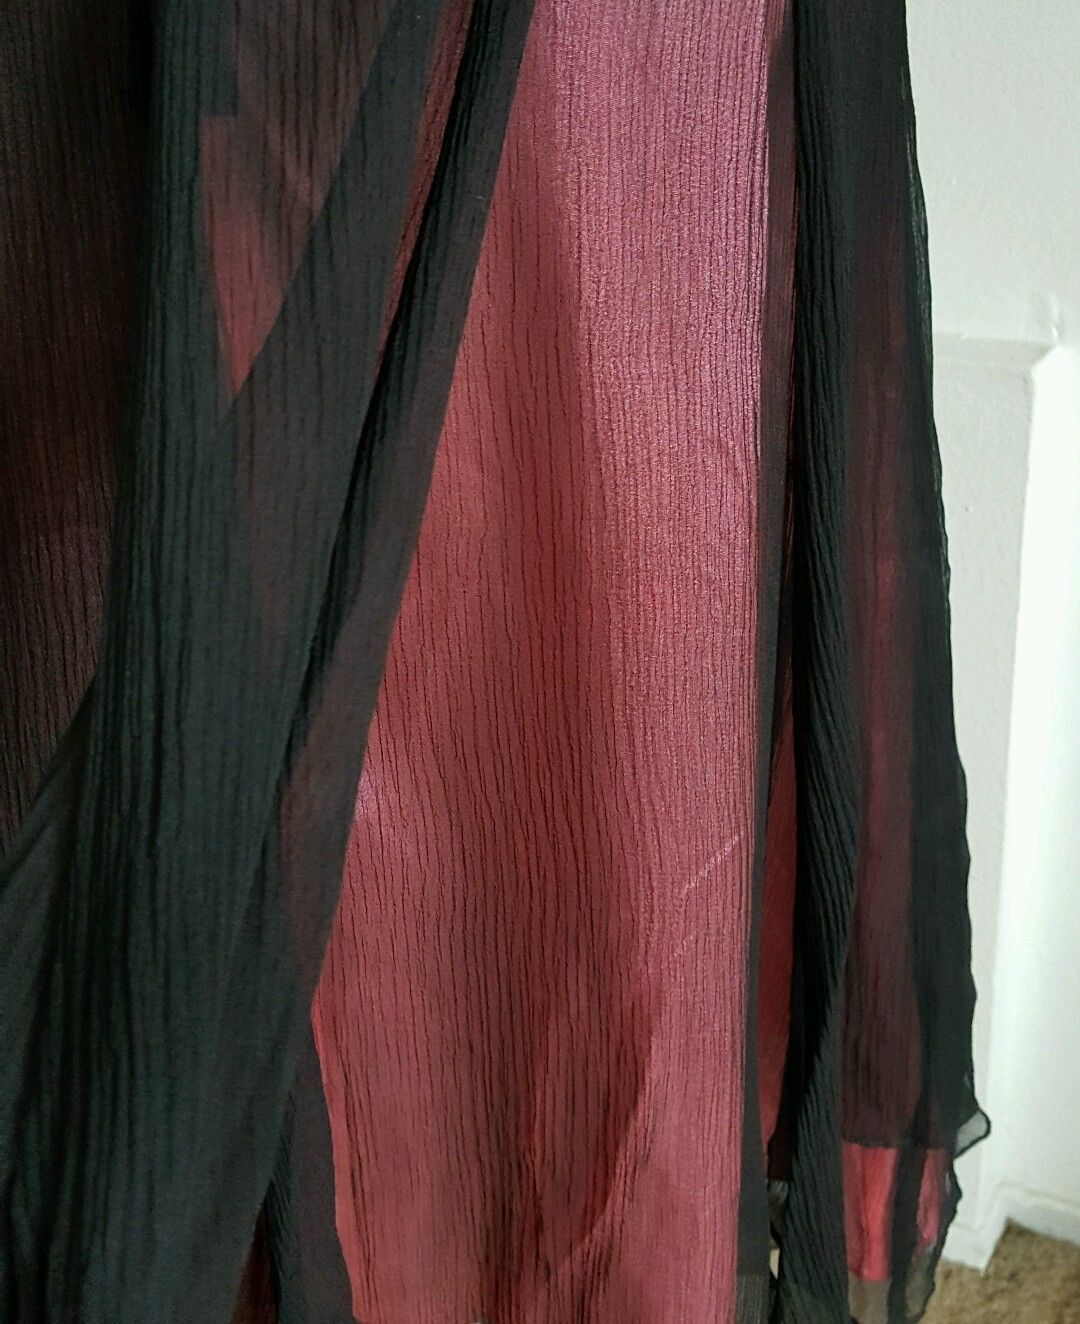 Free People Multi Layer Skirt Black Sheer Pink Solid Size 0 NWOT